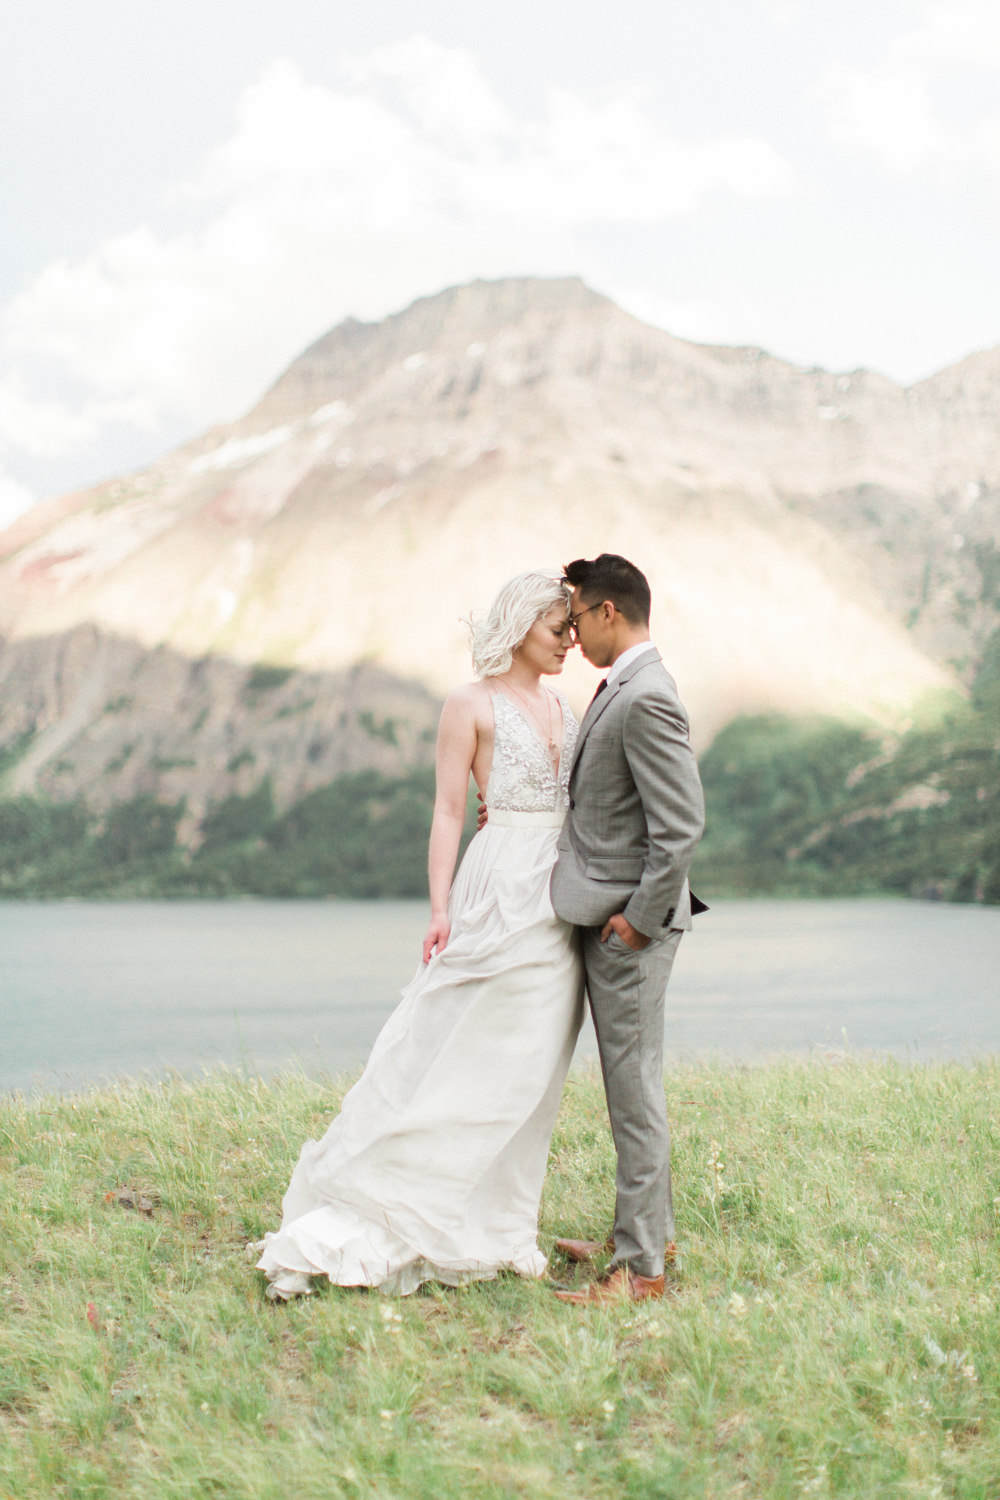 banff-wedding-photography-waterton-6.jpg